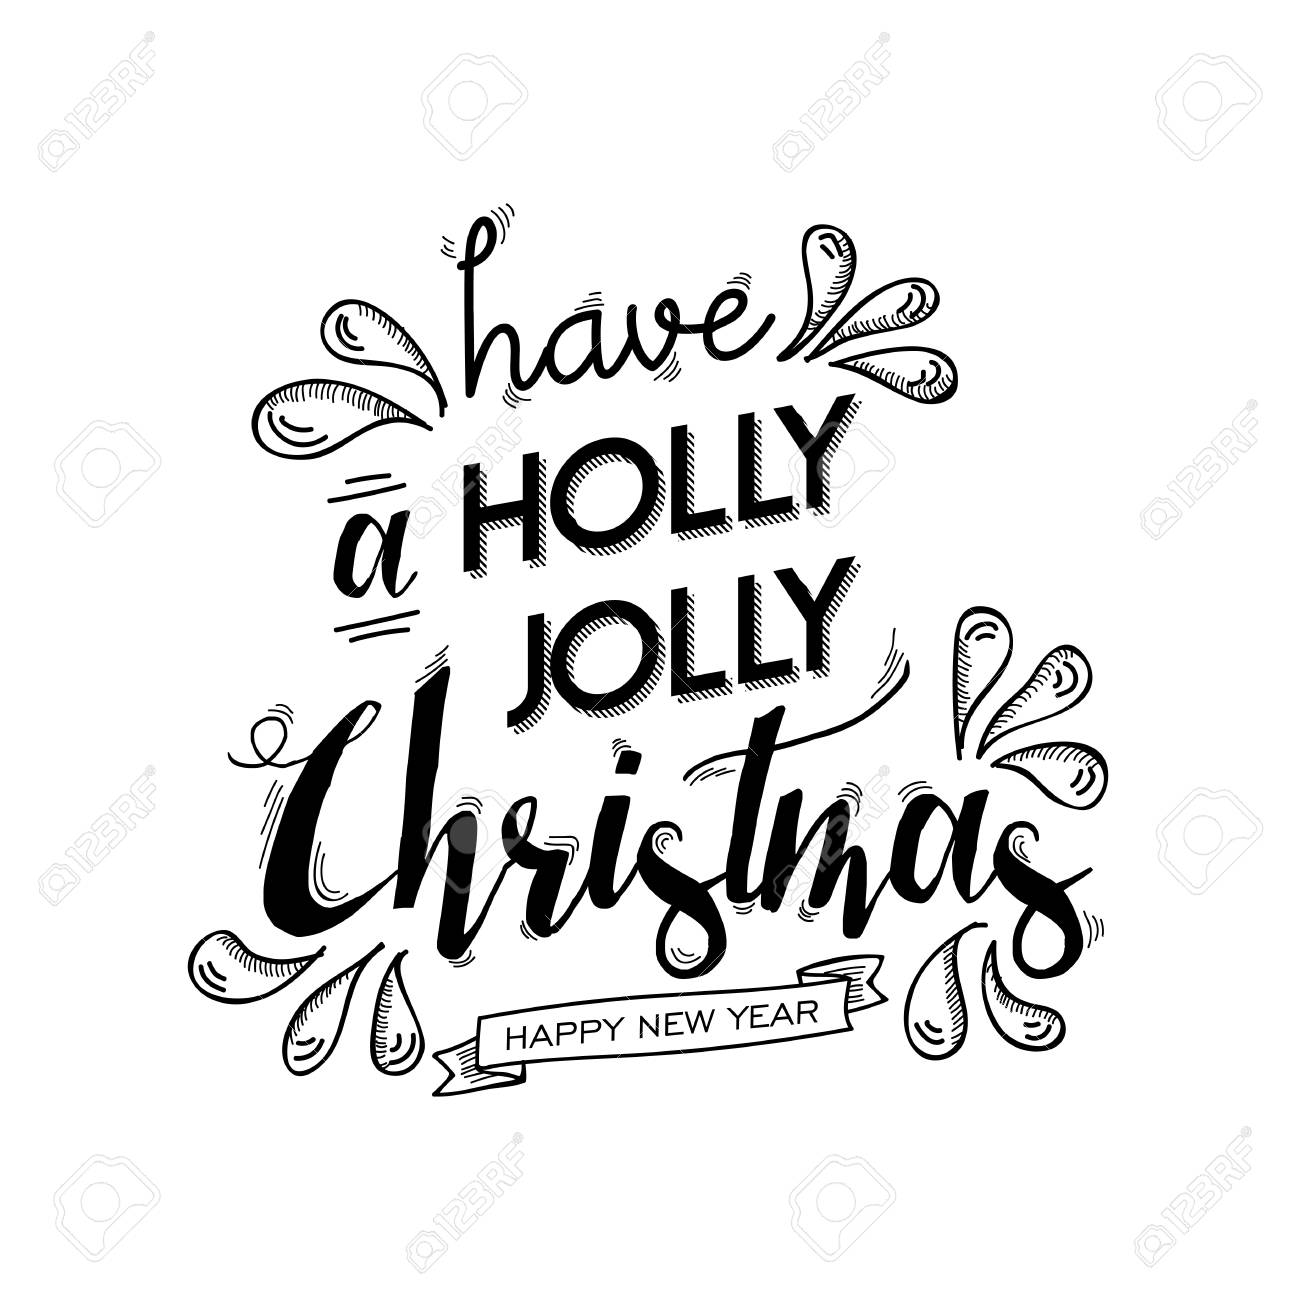 Merry Christmas And Happy New Year Wish Lettering Design. Xmas ...